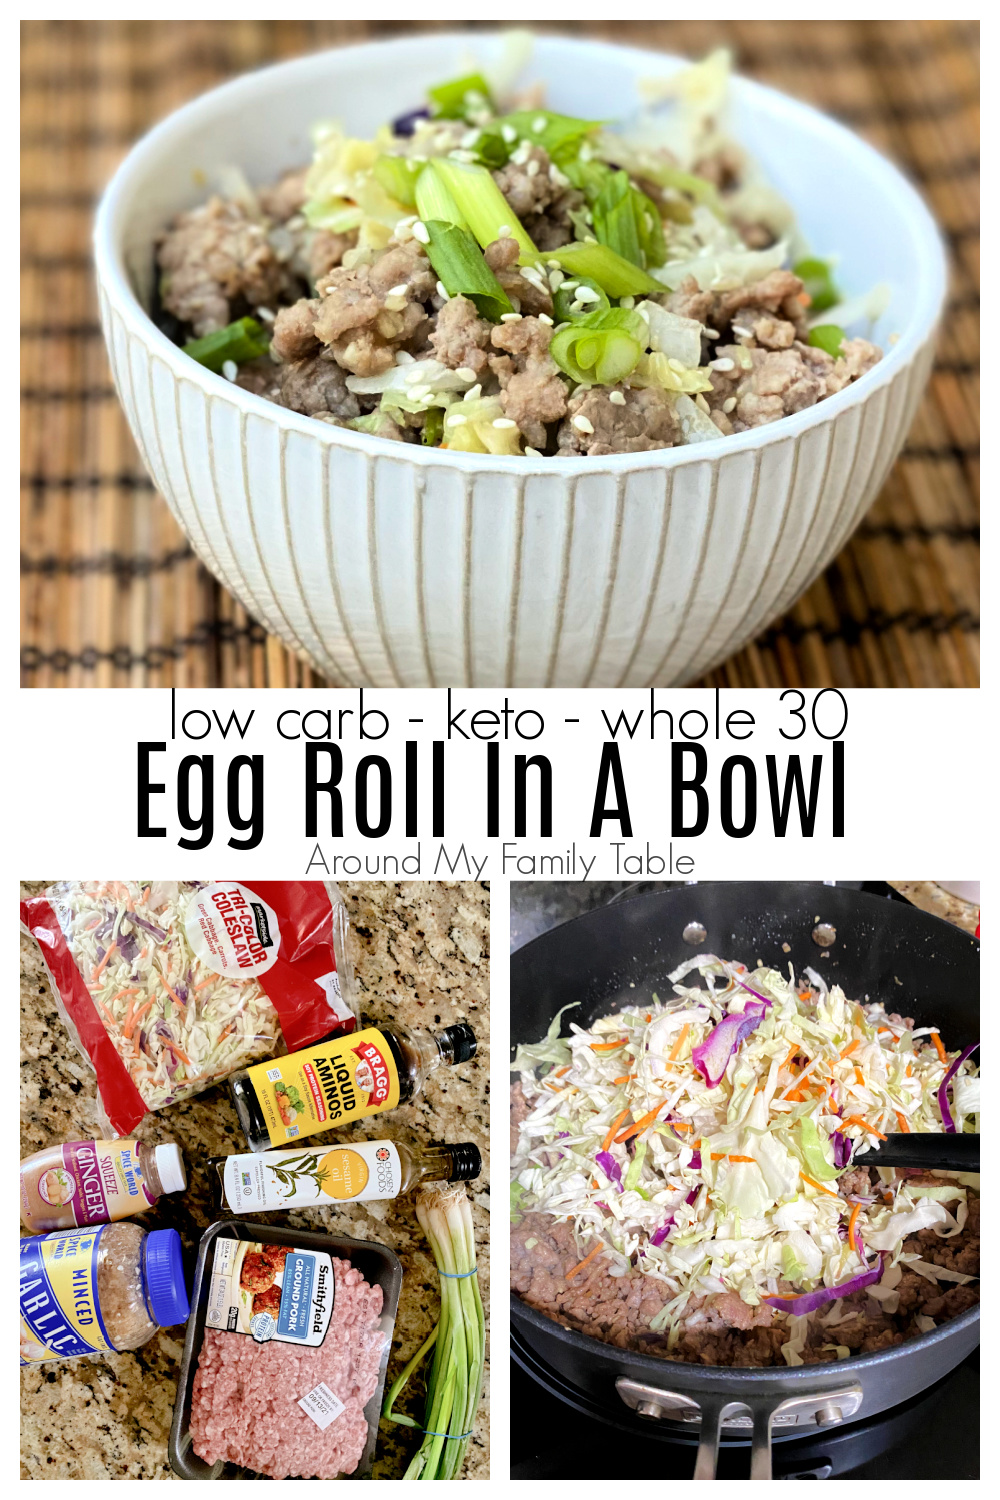 Keto Egg Roll in a Bowl is a simple and quick dinner that has all the delicious flavors of an egg roll without the carbs or fuss of making egg rolls. via @slingmama